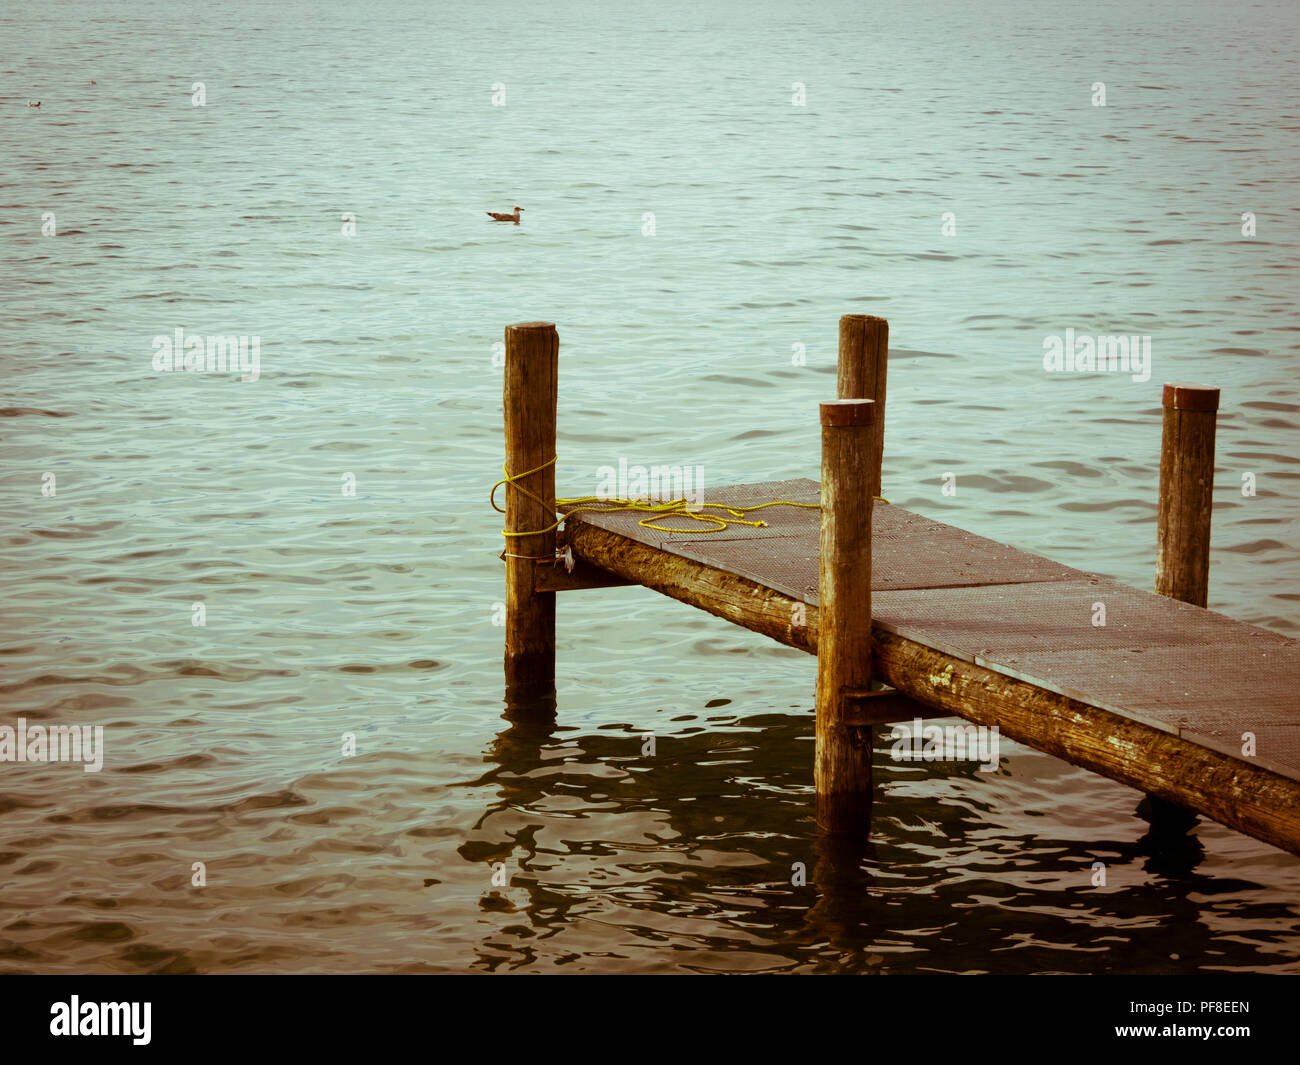 Close-up of a wooden pontoon on a lake with green waters. Lac Léman. Haute Savoie, Auvergne Rhone Alpes, France - Stock Image